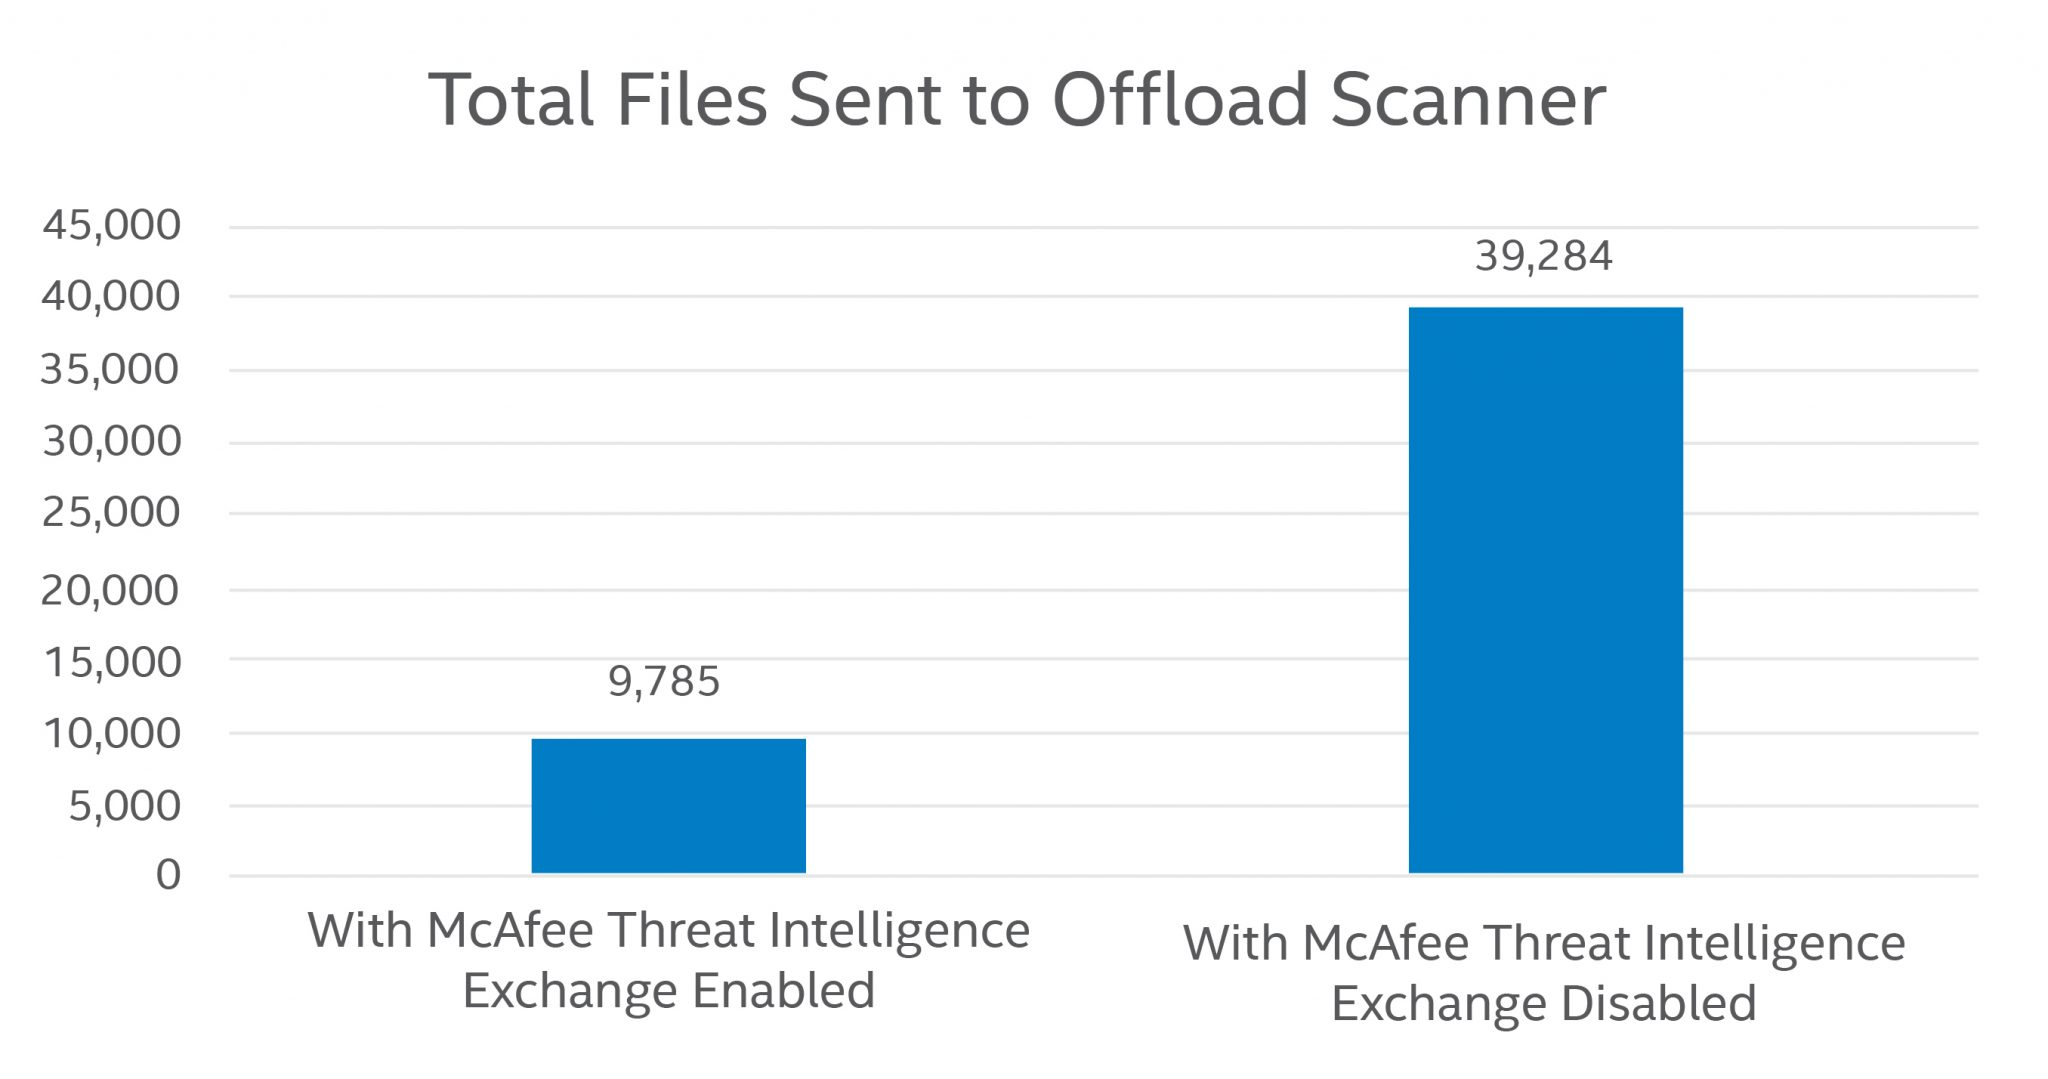 Total Files Sent to Offload Scanner with McAfee MOVE